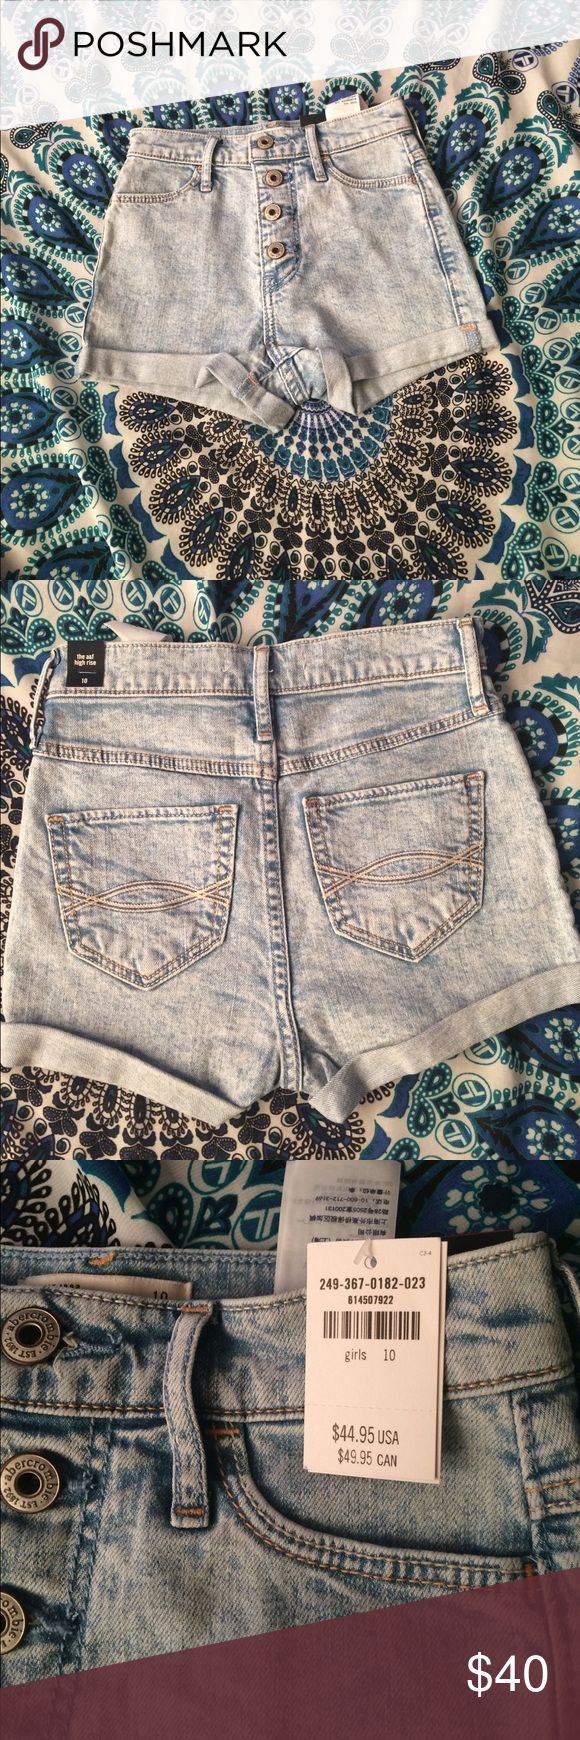 High rise shorts Light wash high rise denim shorts. Abercrombie girls size 10 Abercombie Kids Bottoms Shorts